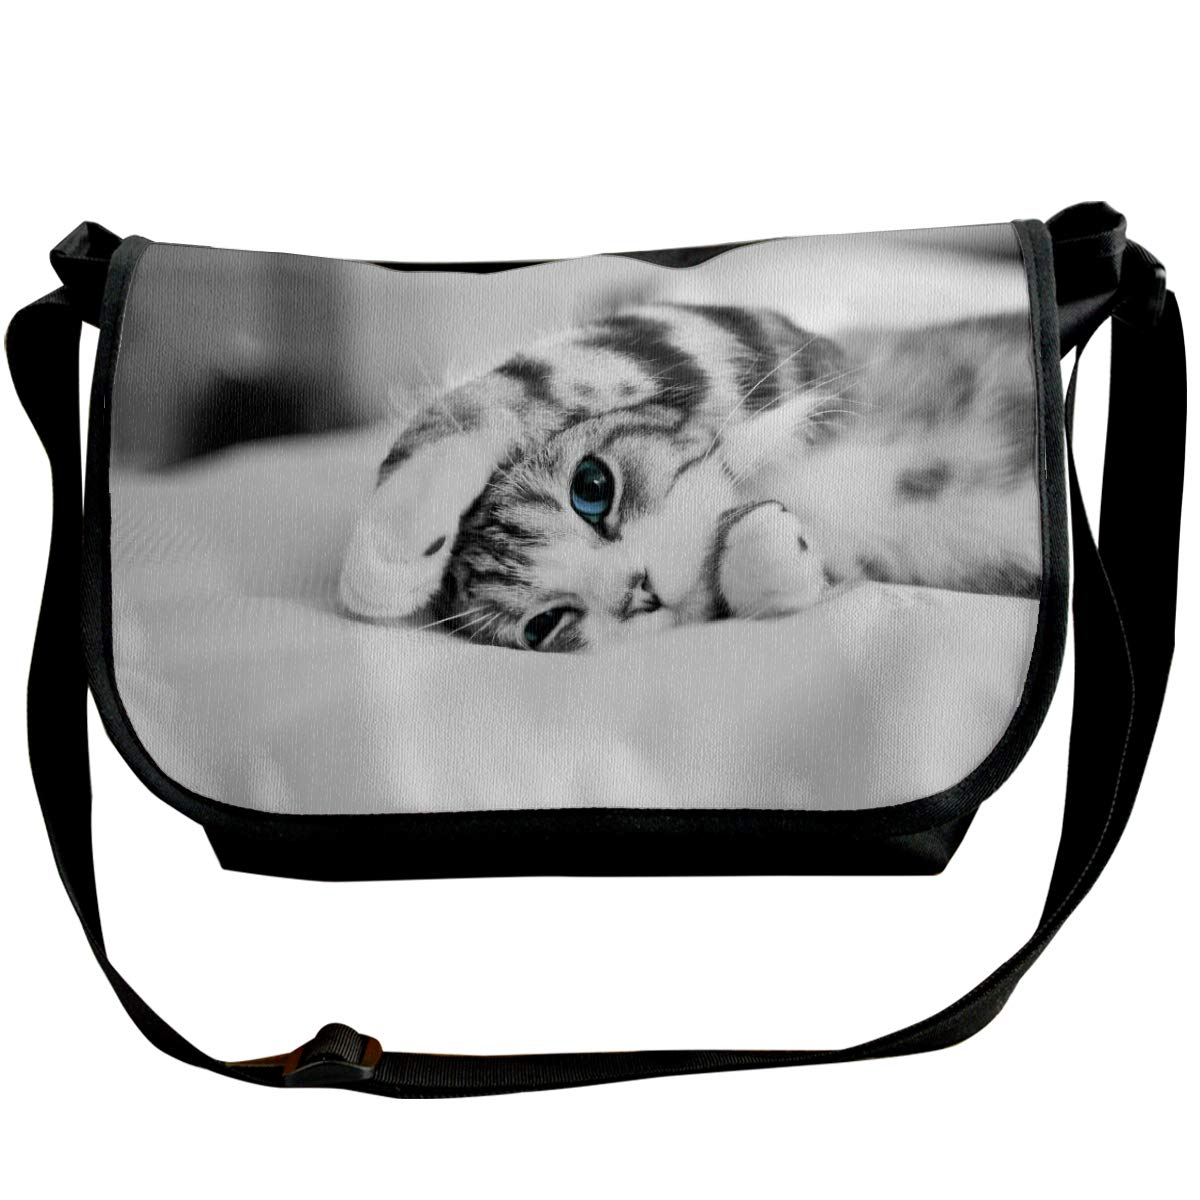 Taslilye Blue Eyes Cat Cute Kitten Personalized Wide Crossbody Shoulder Bag For Men And Women For Daily Work Or Travel